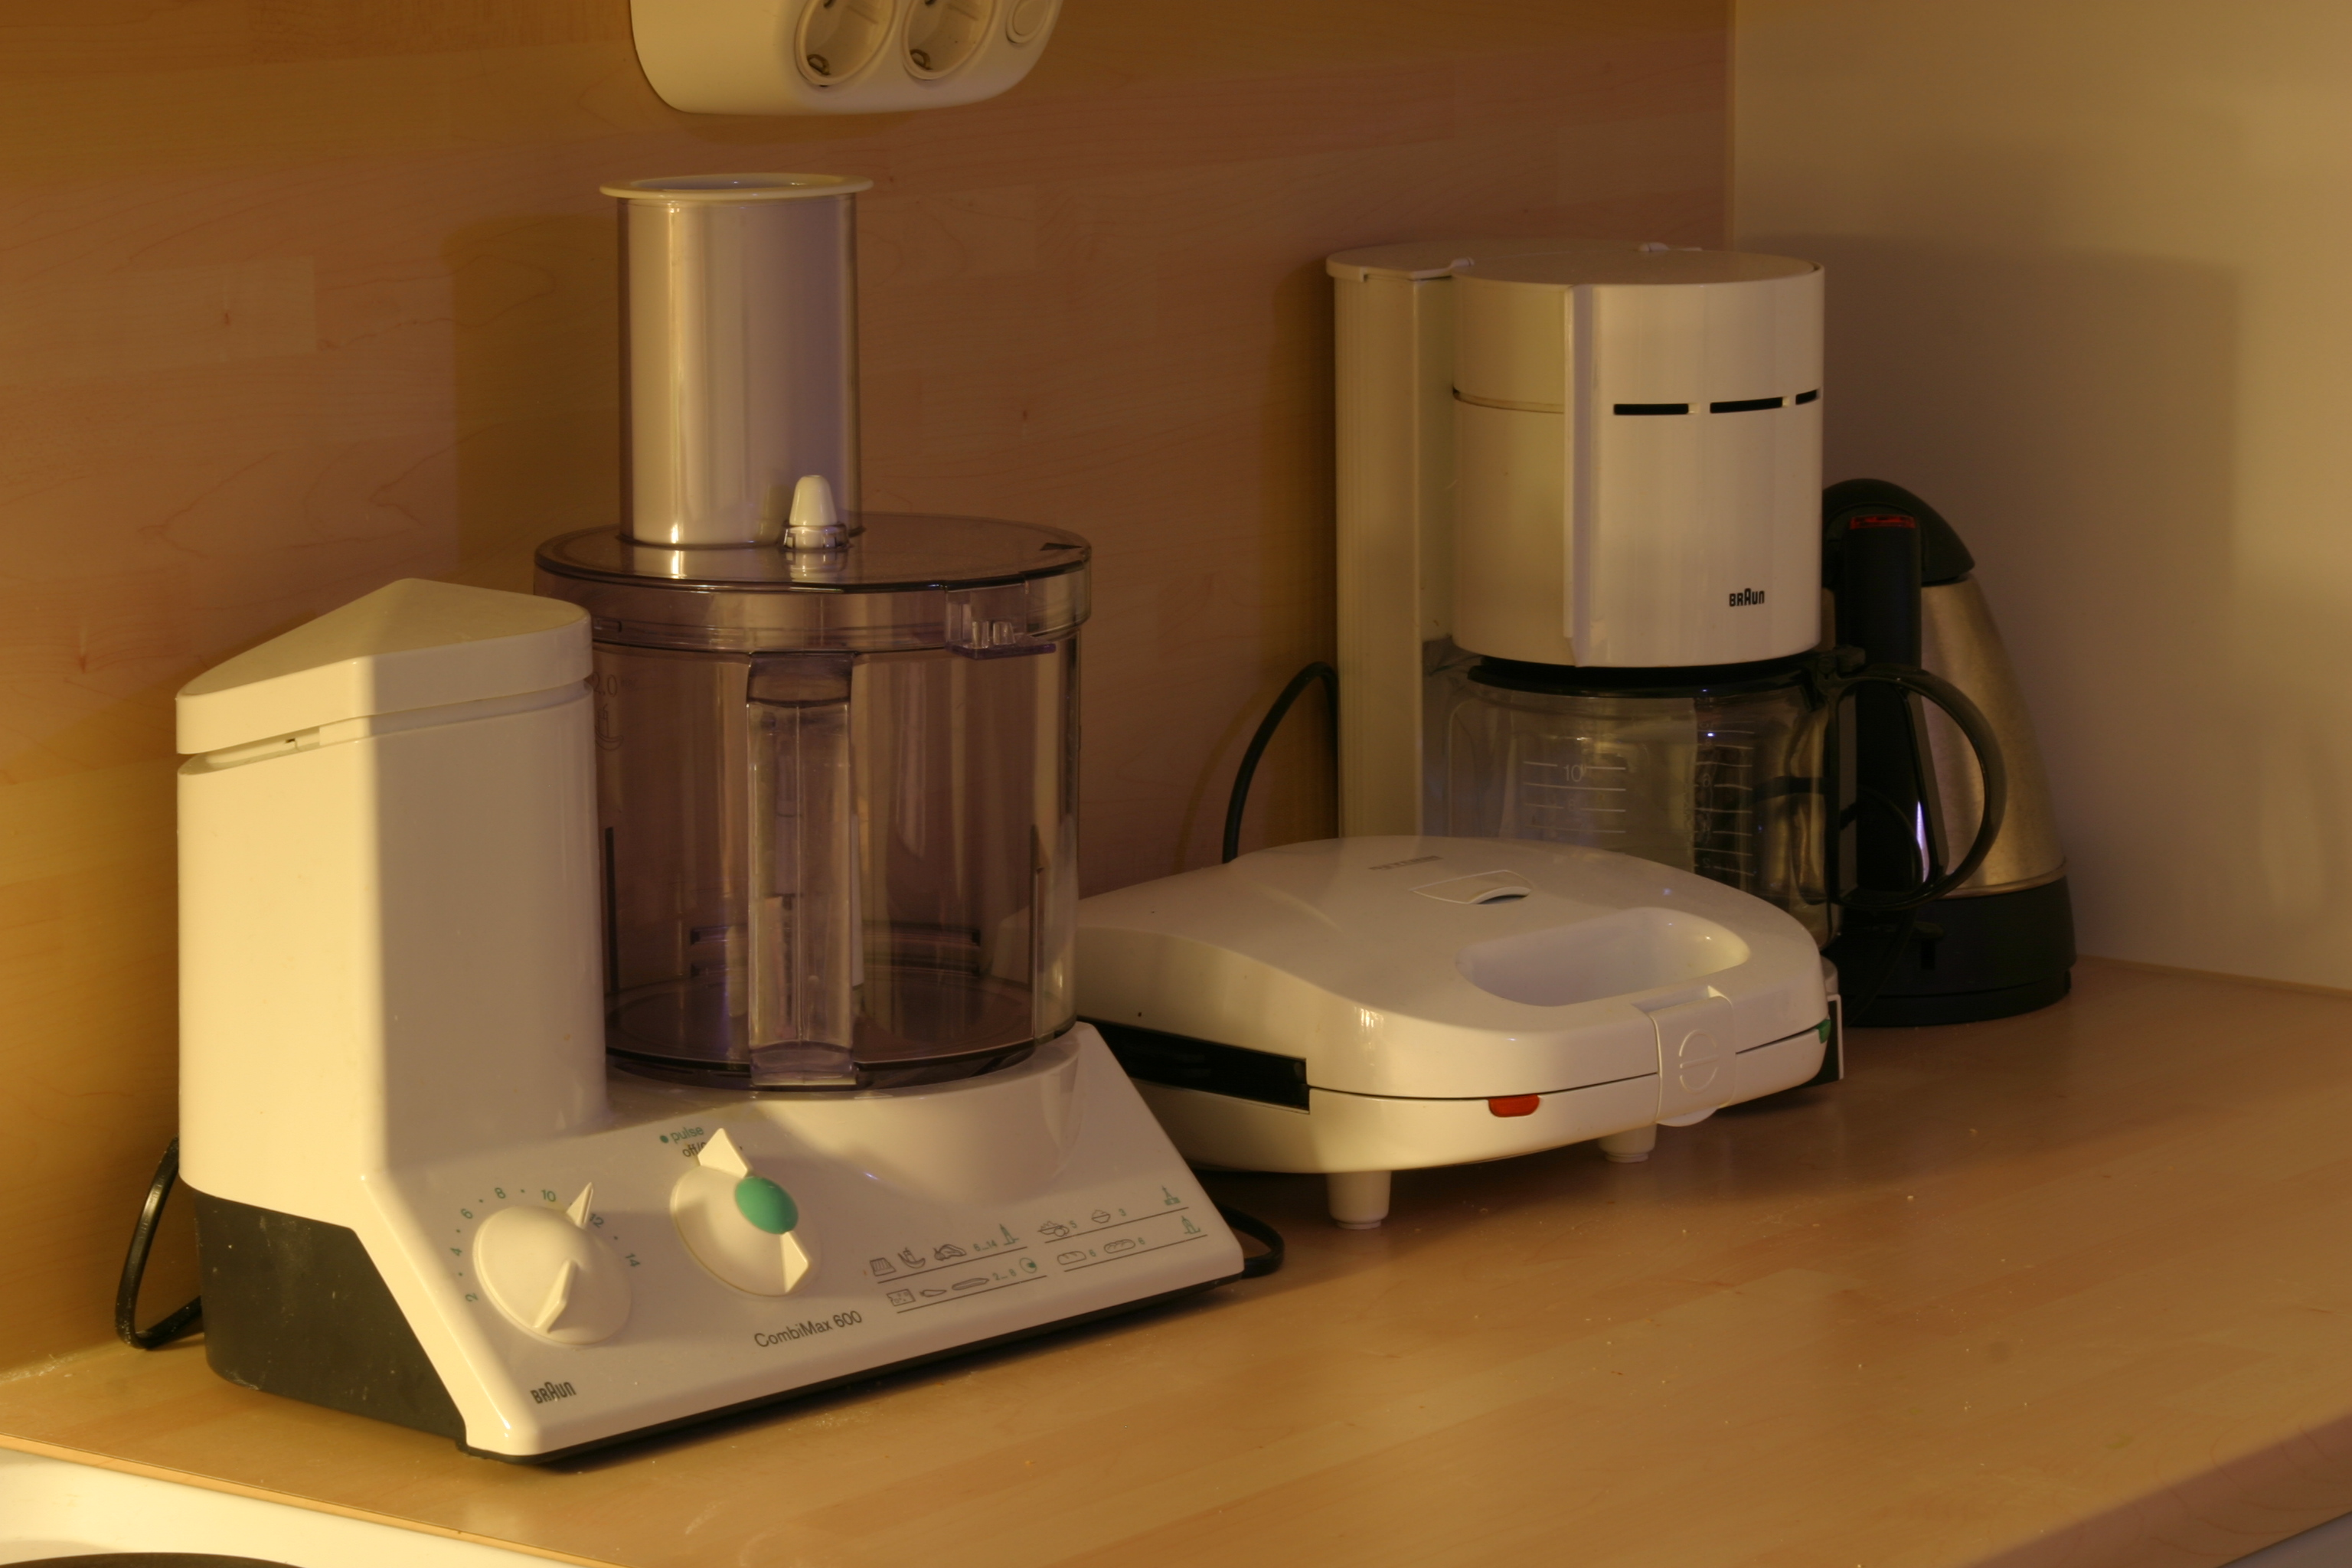 Dishwasher Repair Center Kitchen Appliance Reviews And